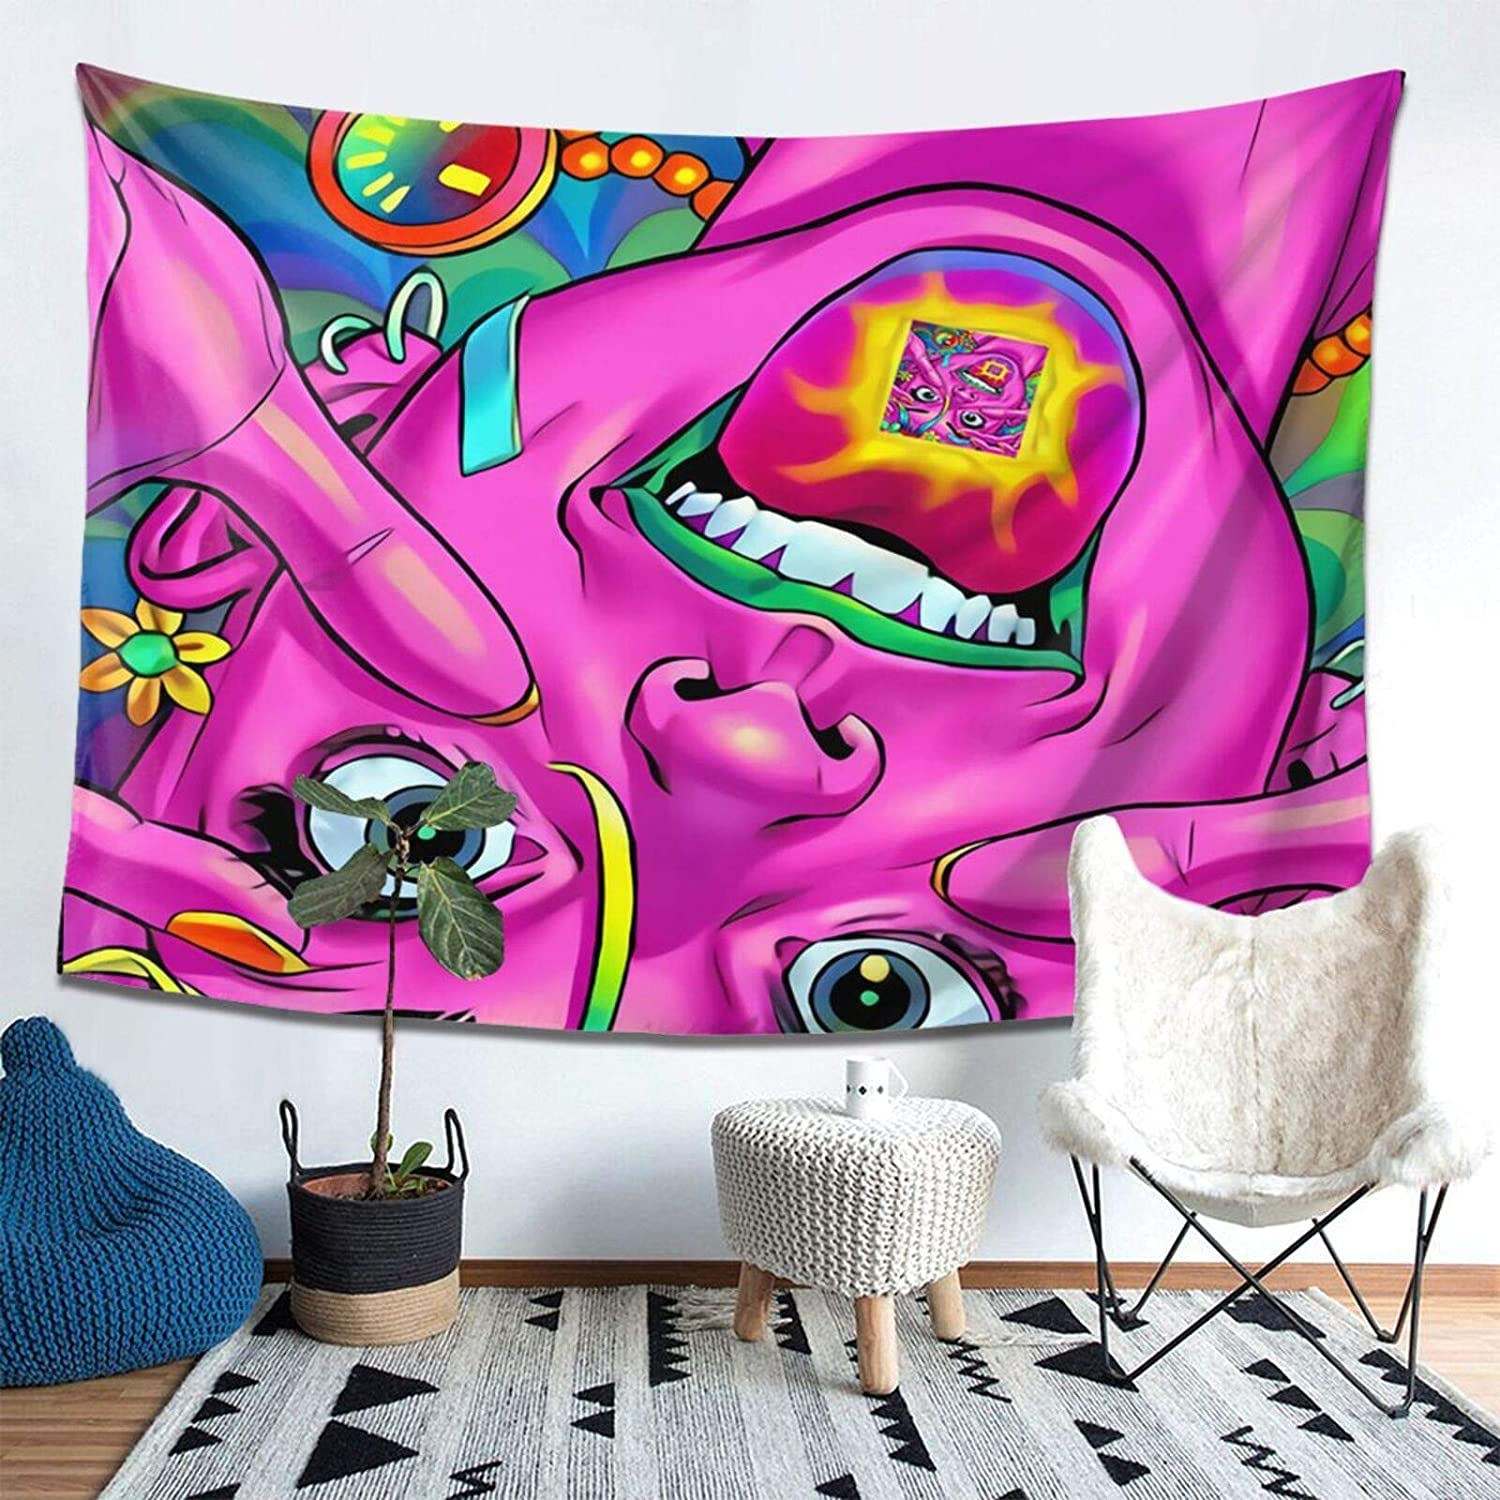 Hippie Smiley Tapestry Wall Hanging,Pink Tapestry Aesthetic Wall Blanket Multifunctional Mat for Home Kitchen Office Dorm Party Decoration 60x40 inch